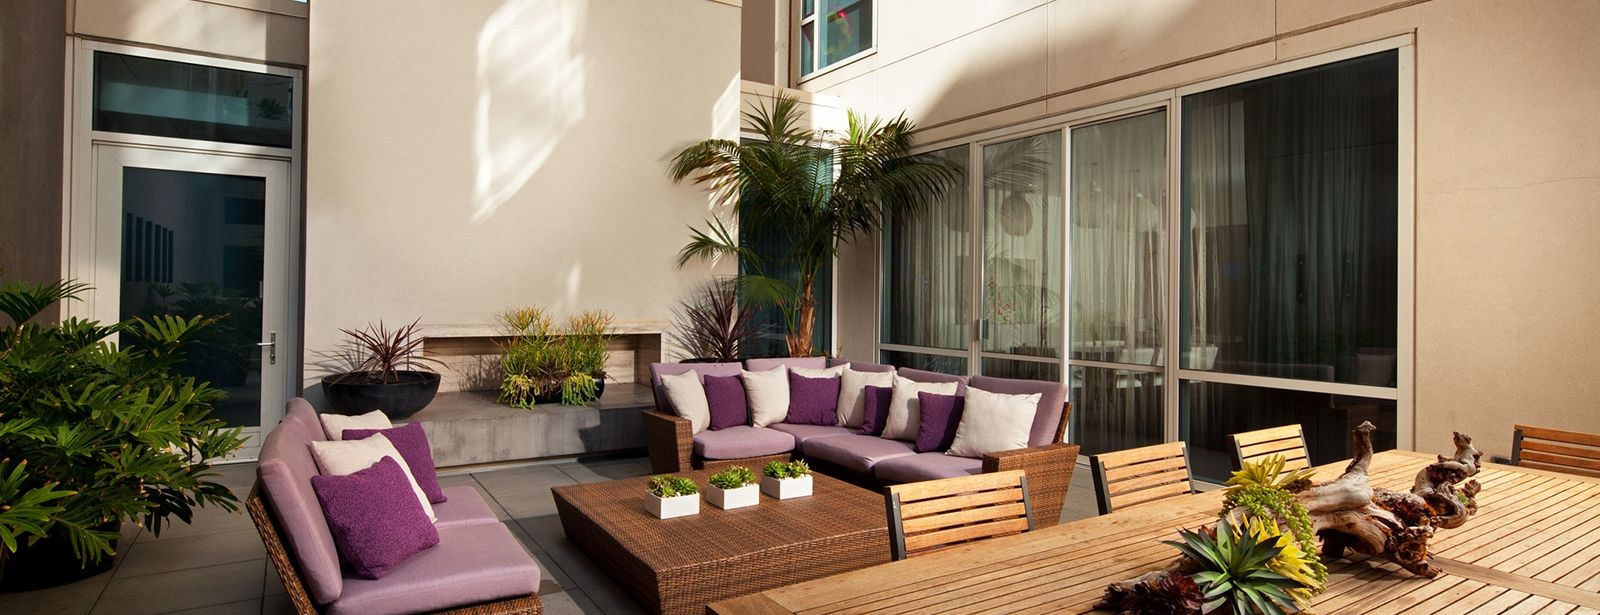 Hollywood Accommodation - Garden Wow Suite | W Hollywood Hotel